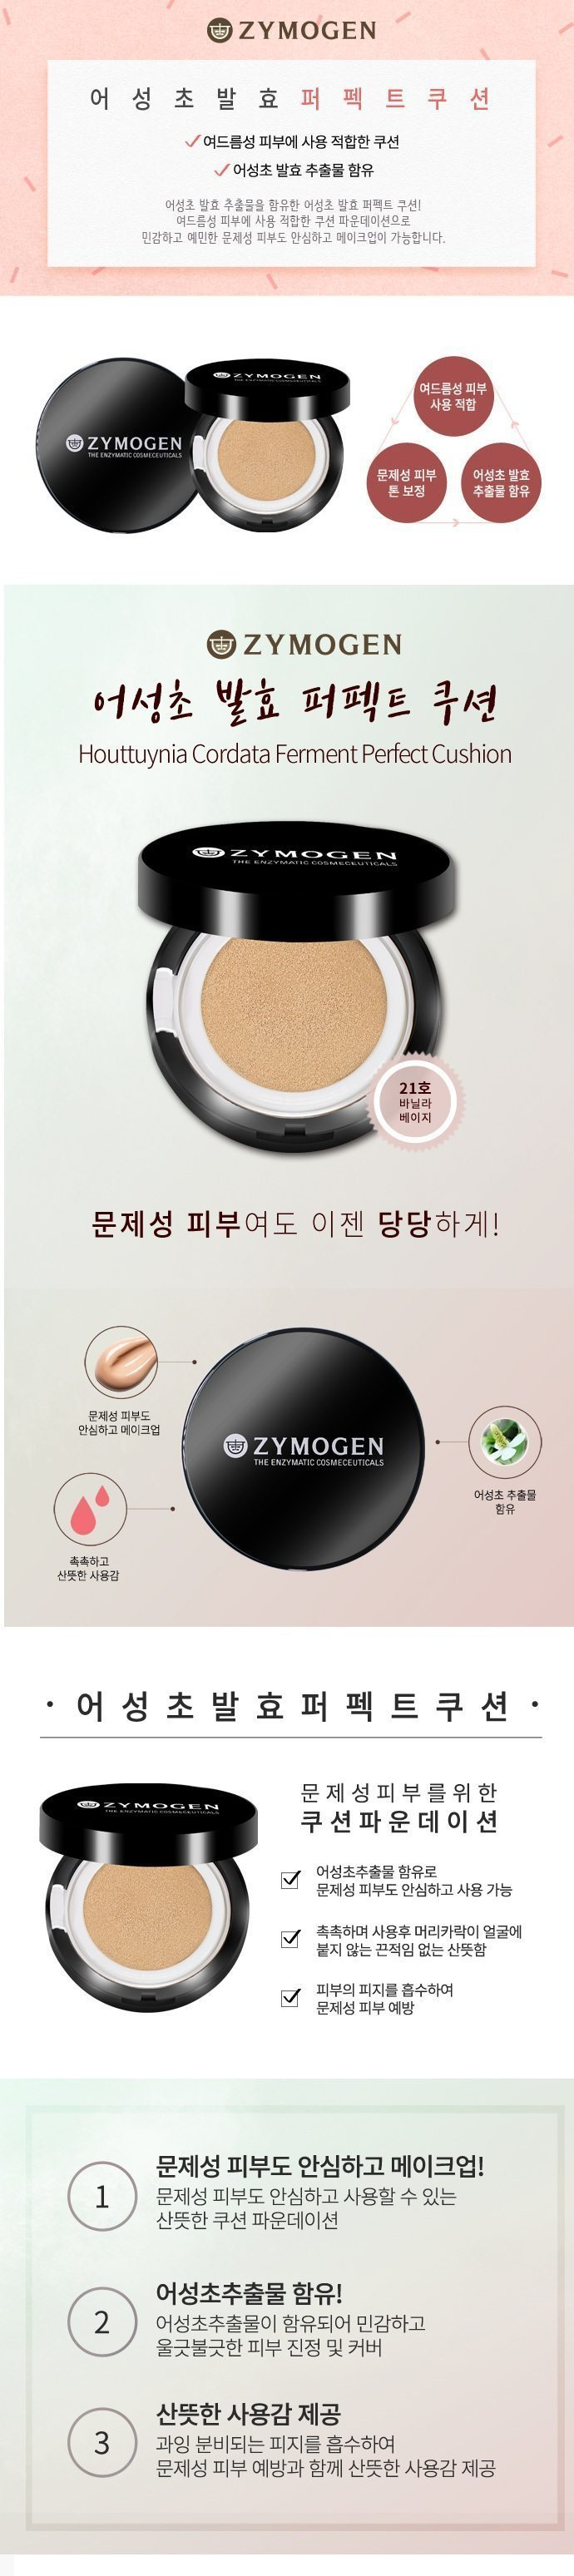 Zymogen Houttuynia Cordata Ferment Perfect Cushion korean cosmetic skincar product online shop malaysia brazil macau1